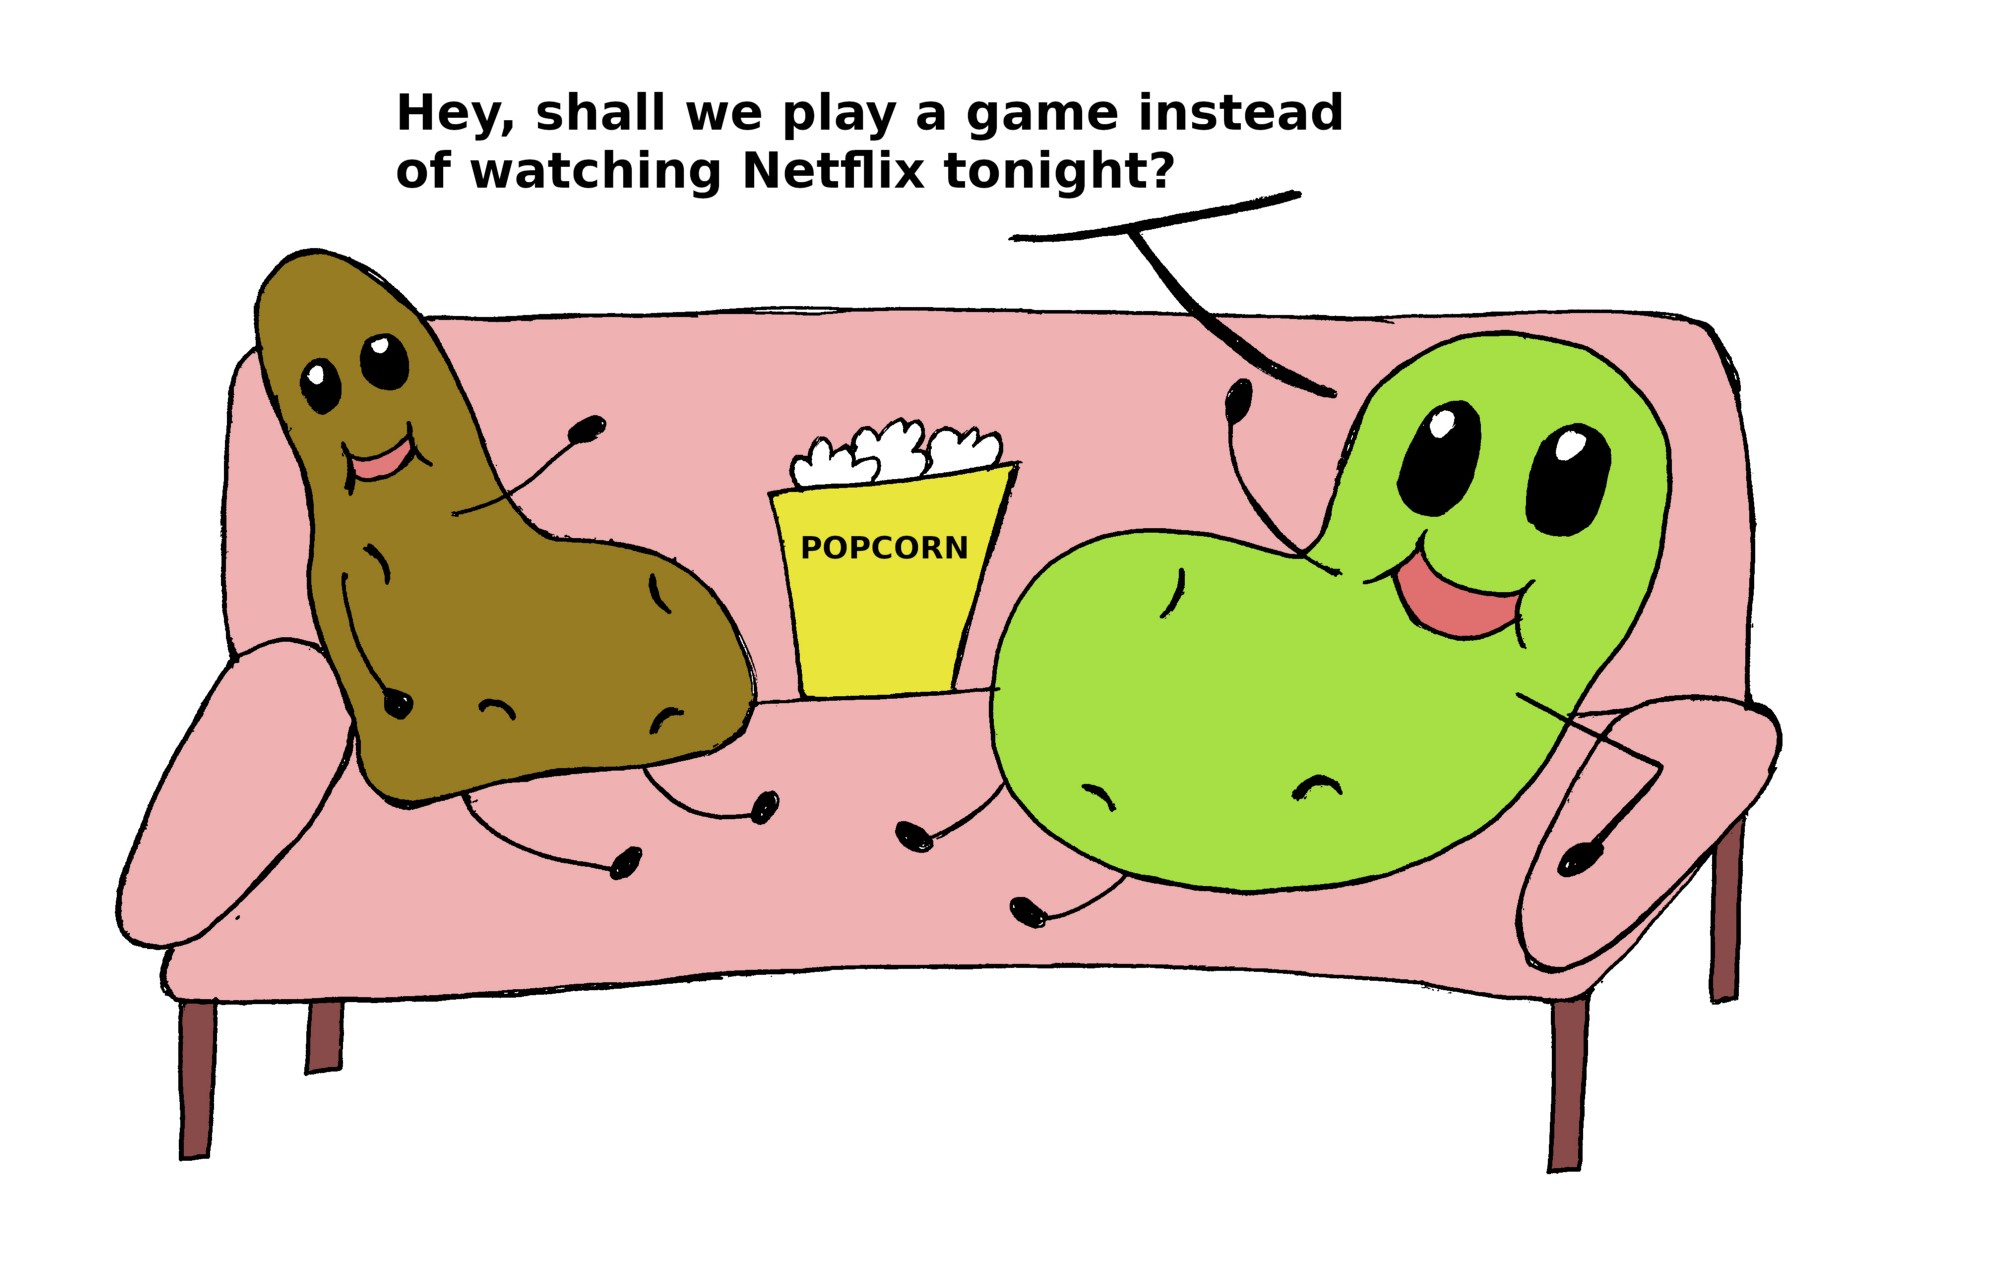 Cartoon of potatoes sitting on a couch together, one suggests playing a game.